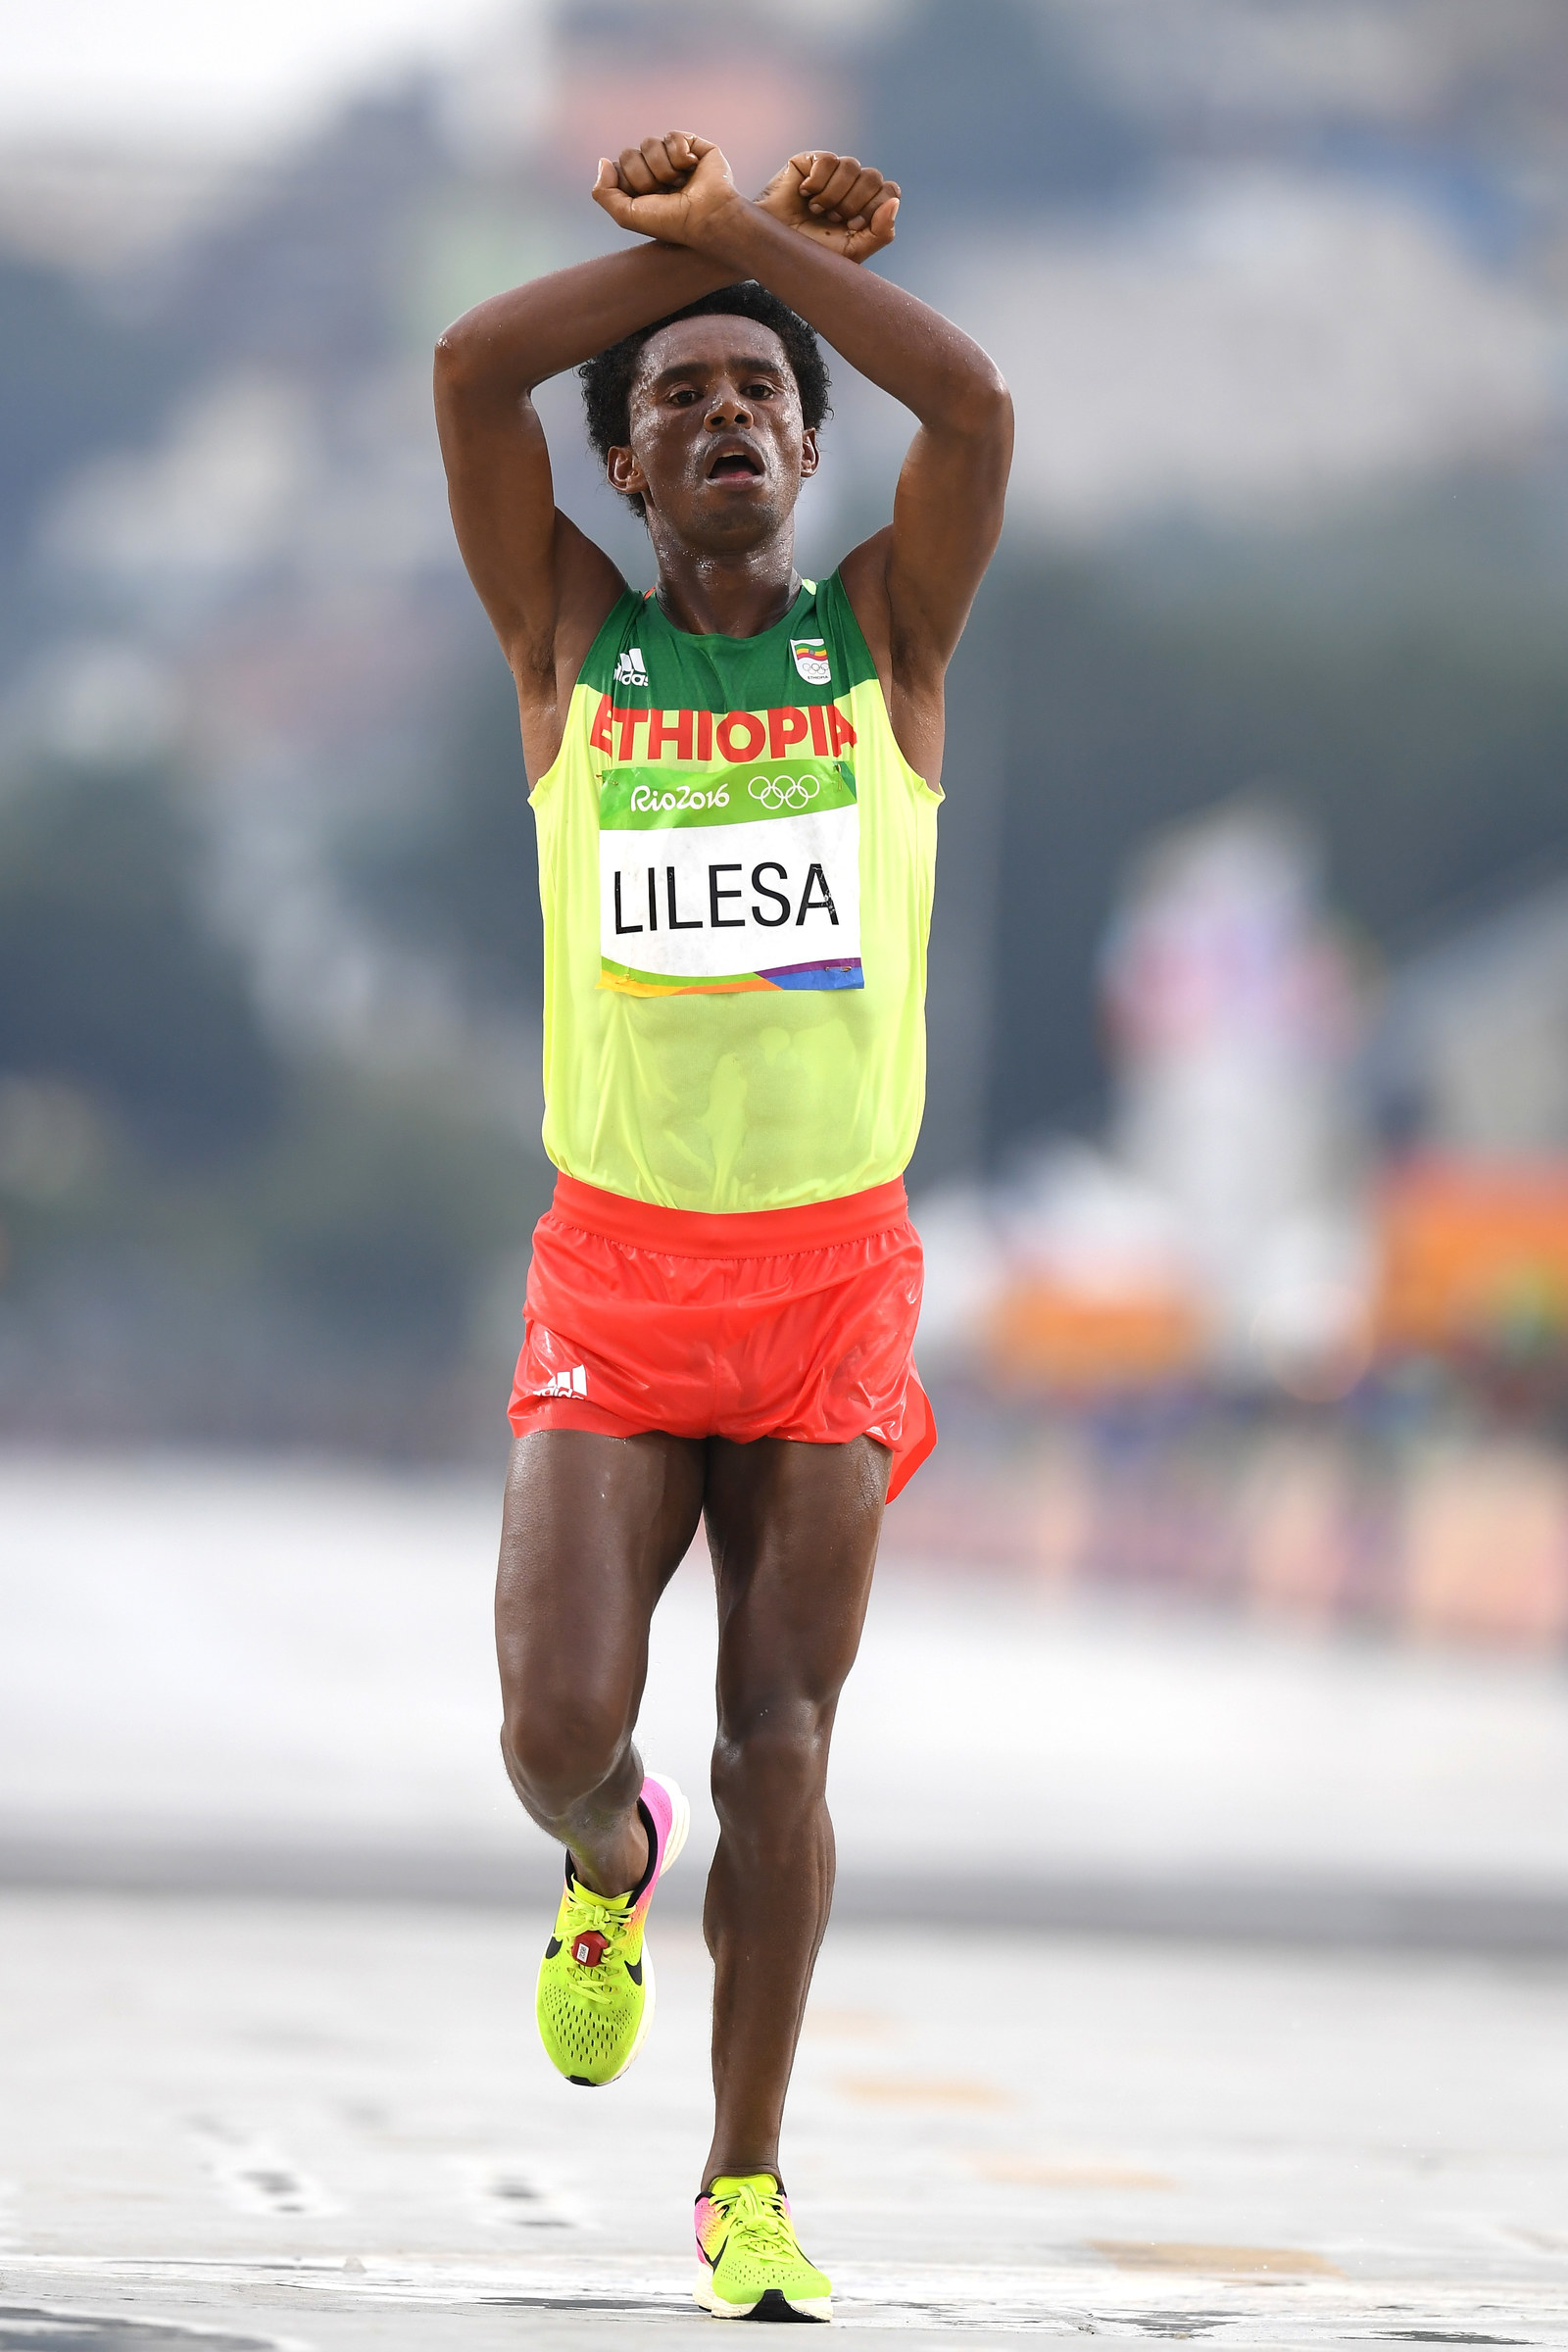 One Of The World's Best Long Distance Runners Is Now Running For His Life